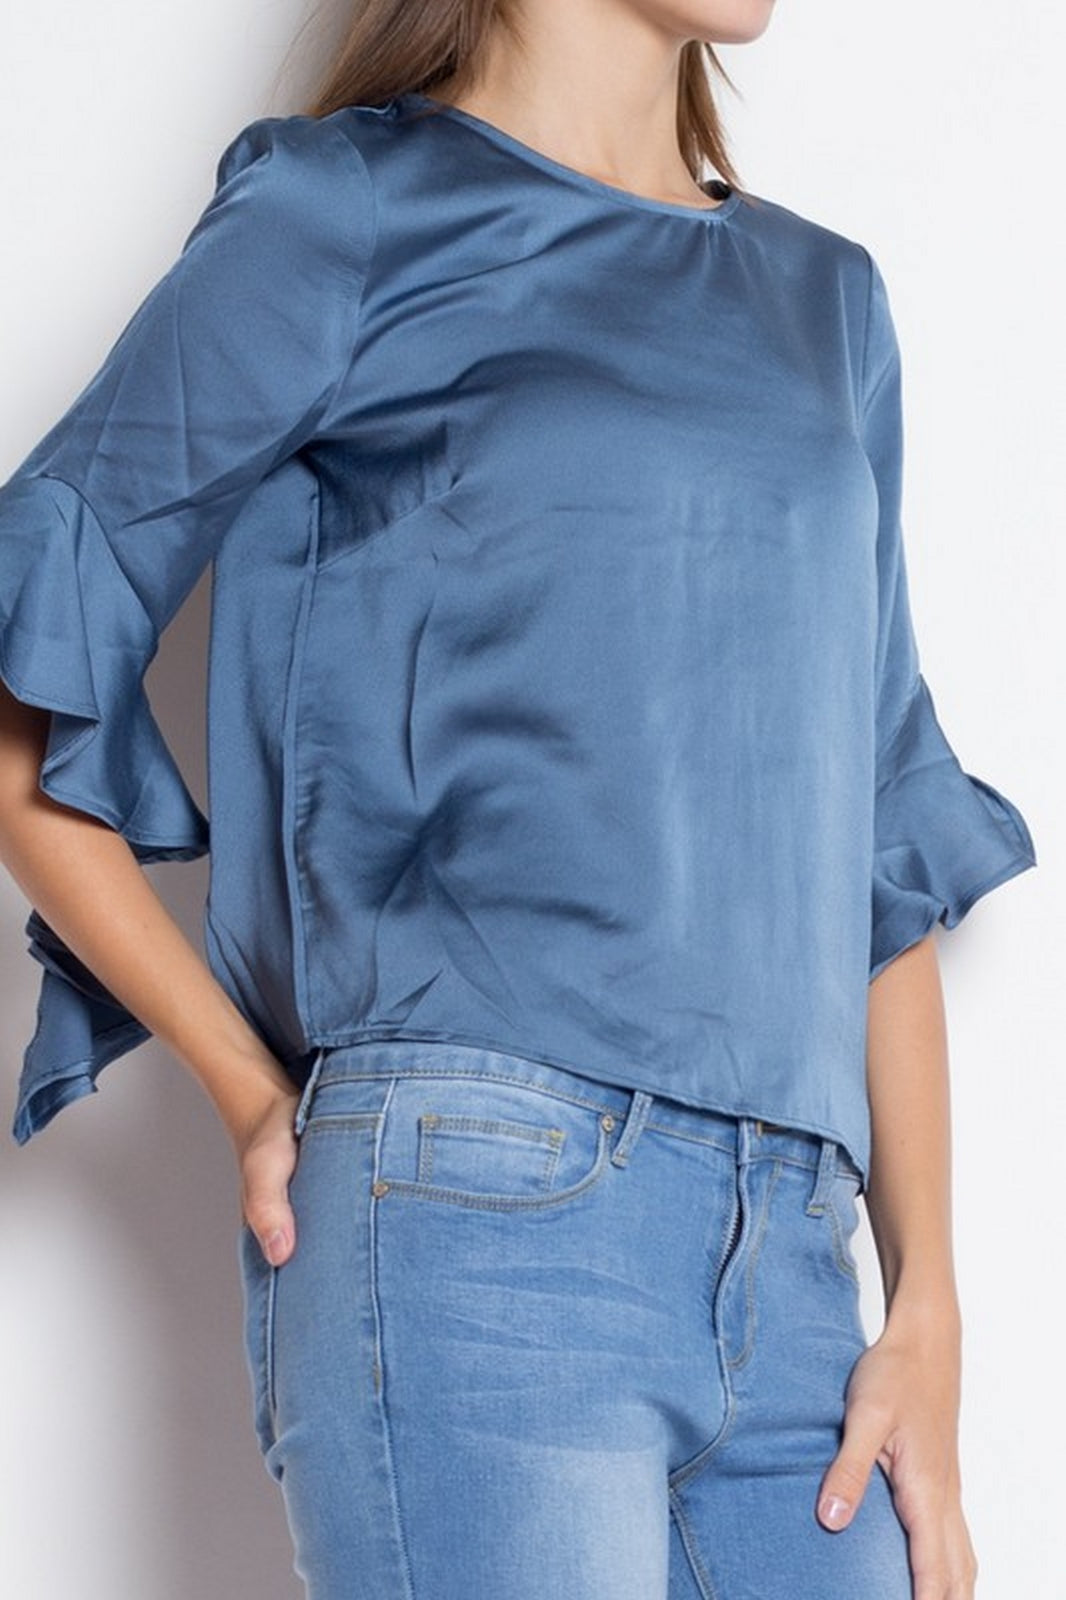 DENIM BLVD SHIRT IT9079